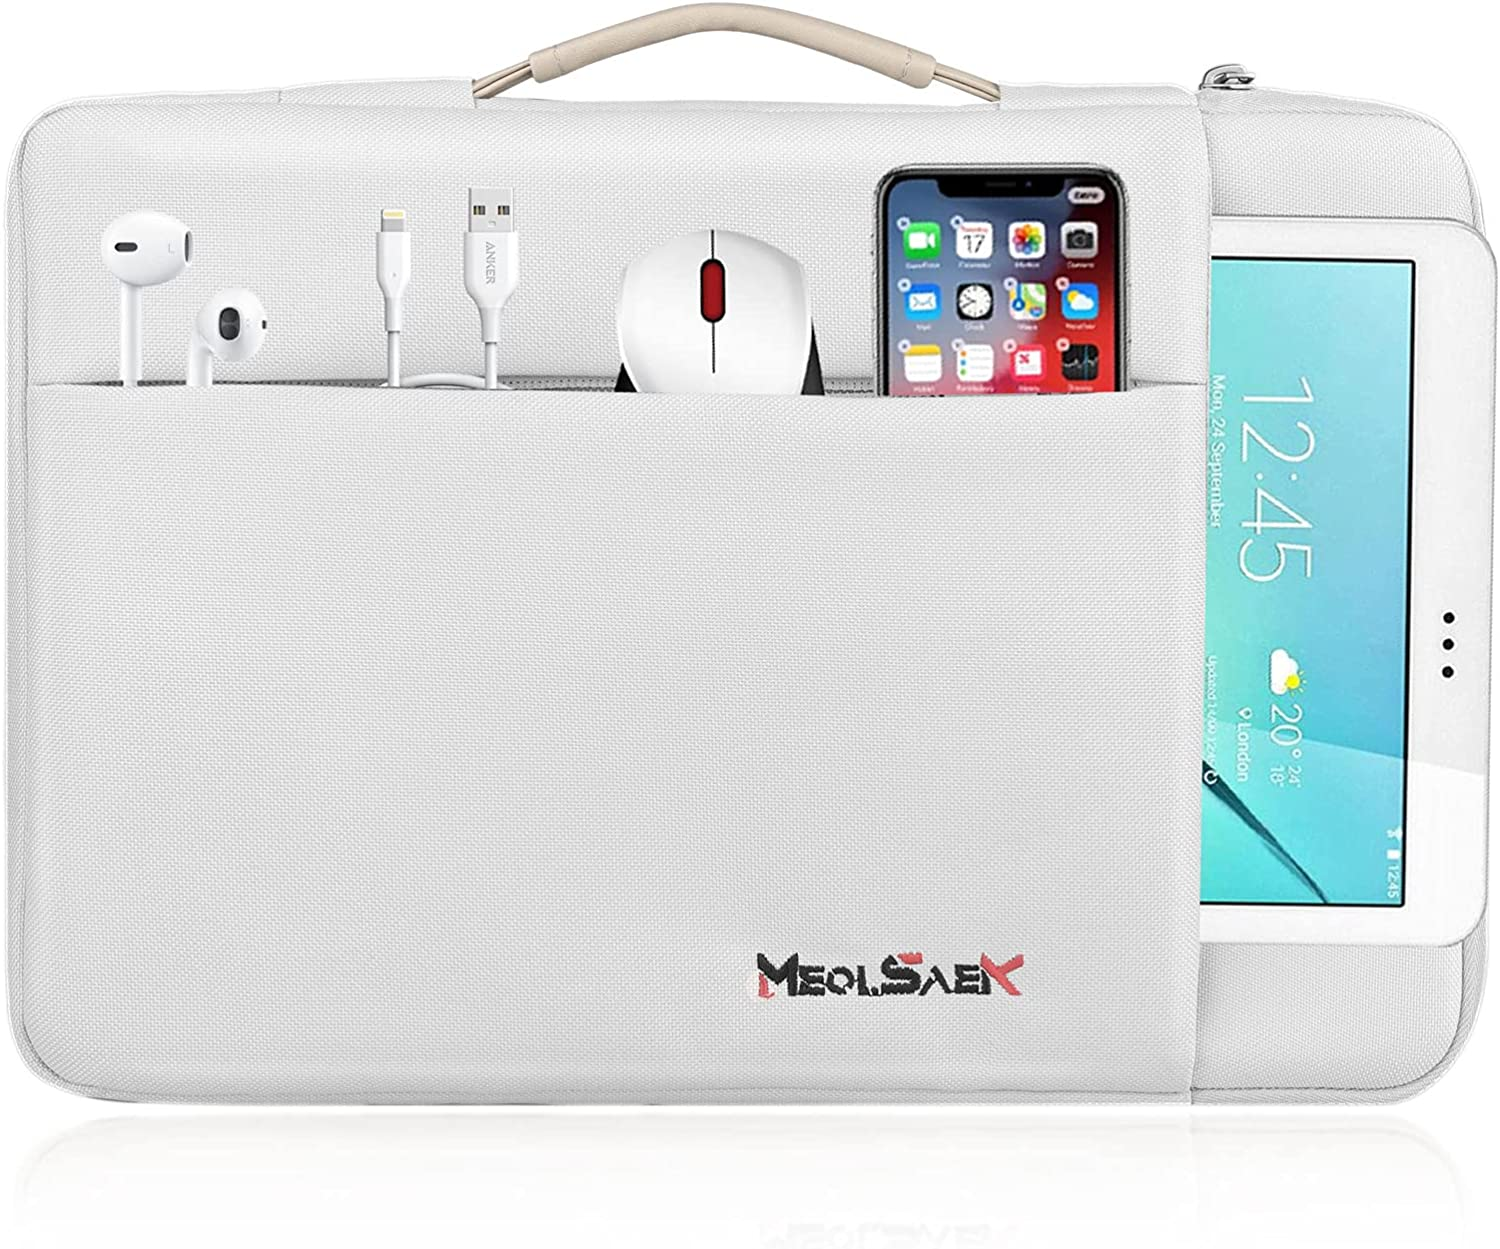 Meolsaek 15.6 Inch Laptop Sleeve Case for 15.6 inch HP, Dell, Lenovo, Notebook, Durable Laptop Carrying Computer Case for ASUS ZenBook Pro,Water-Resistant Hard Shell Case with Handle (15.6 Inch Gray)